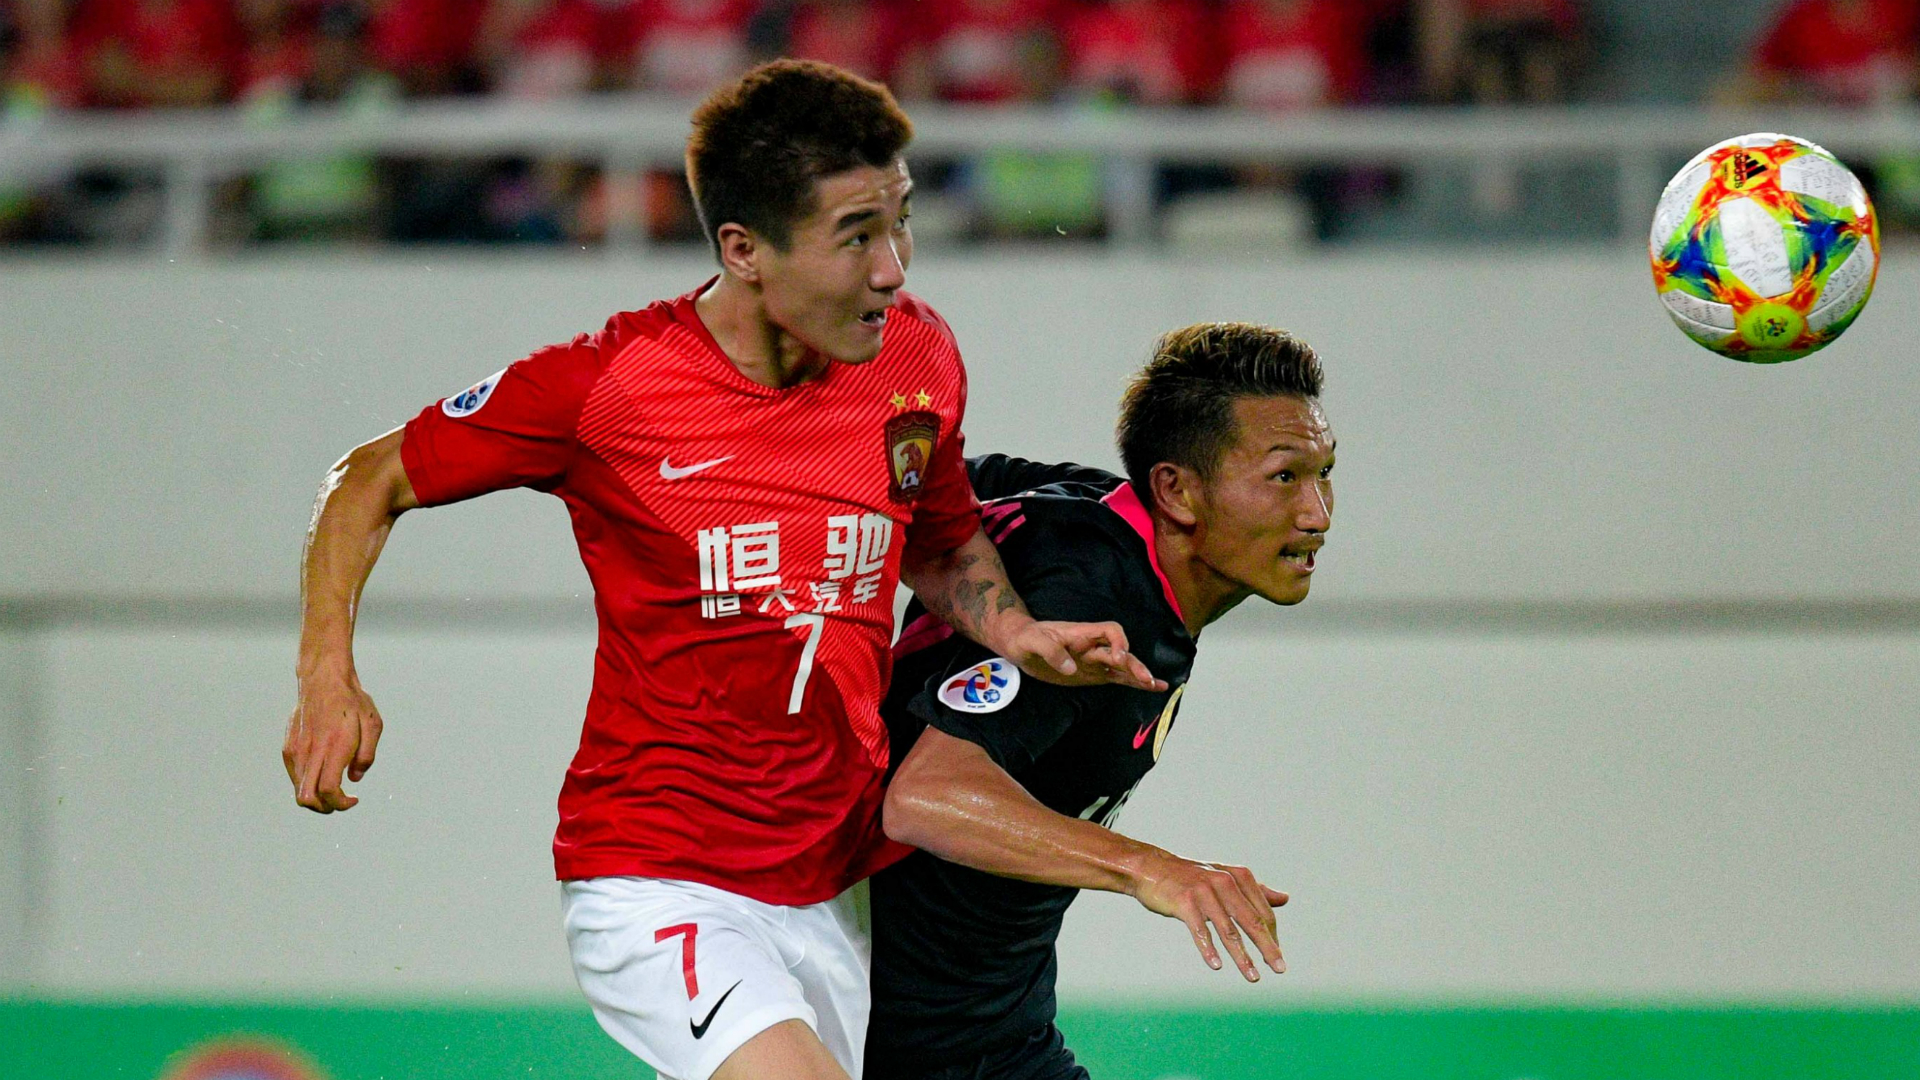 Guangzhou Evergrande 0-0 Kashima Antlers: Shirasaki goes closest as first leg ends in stalemate